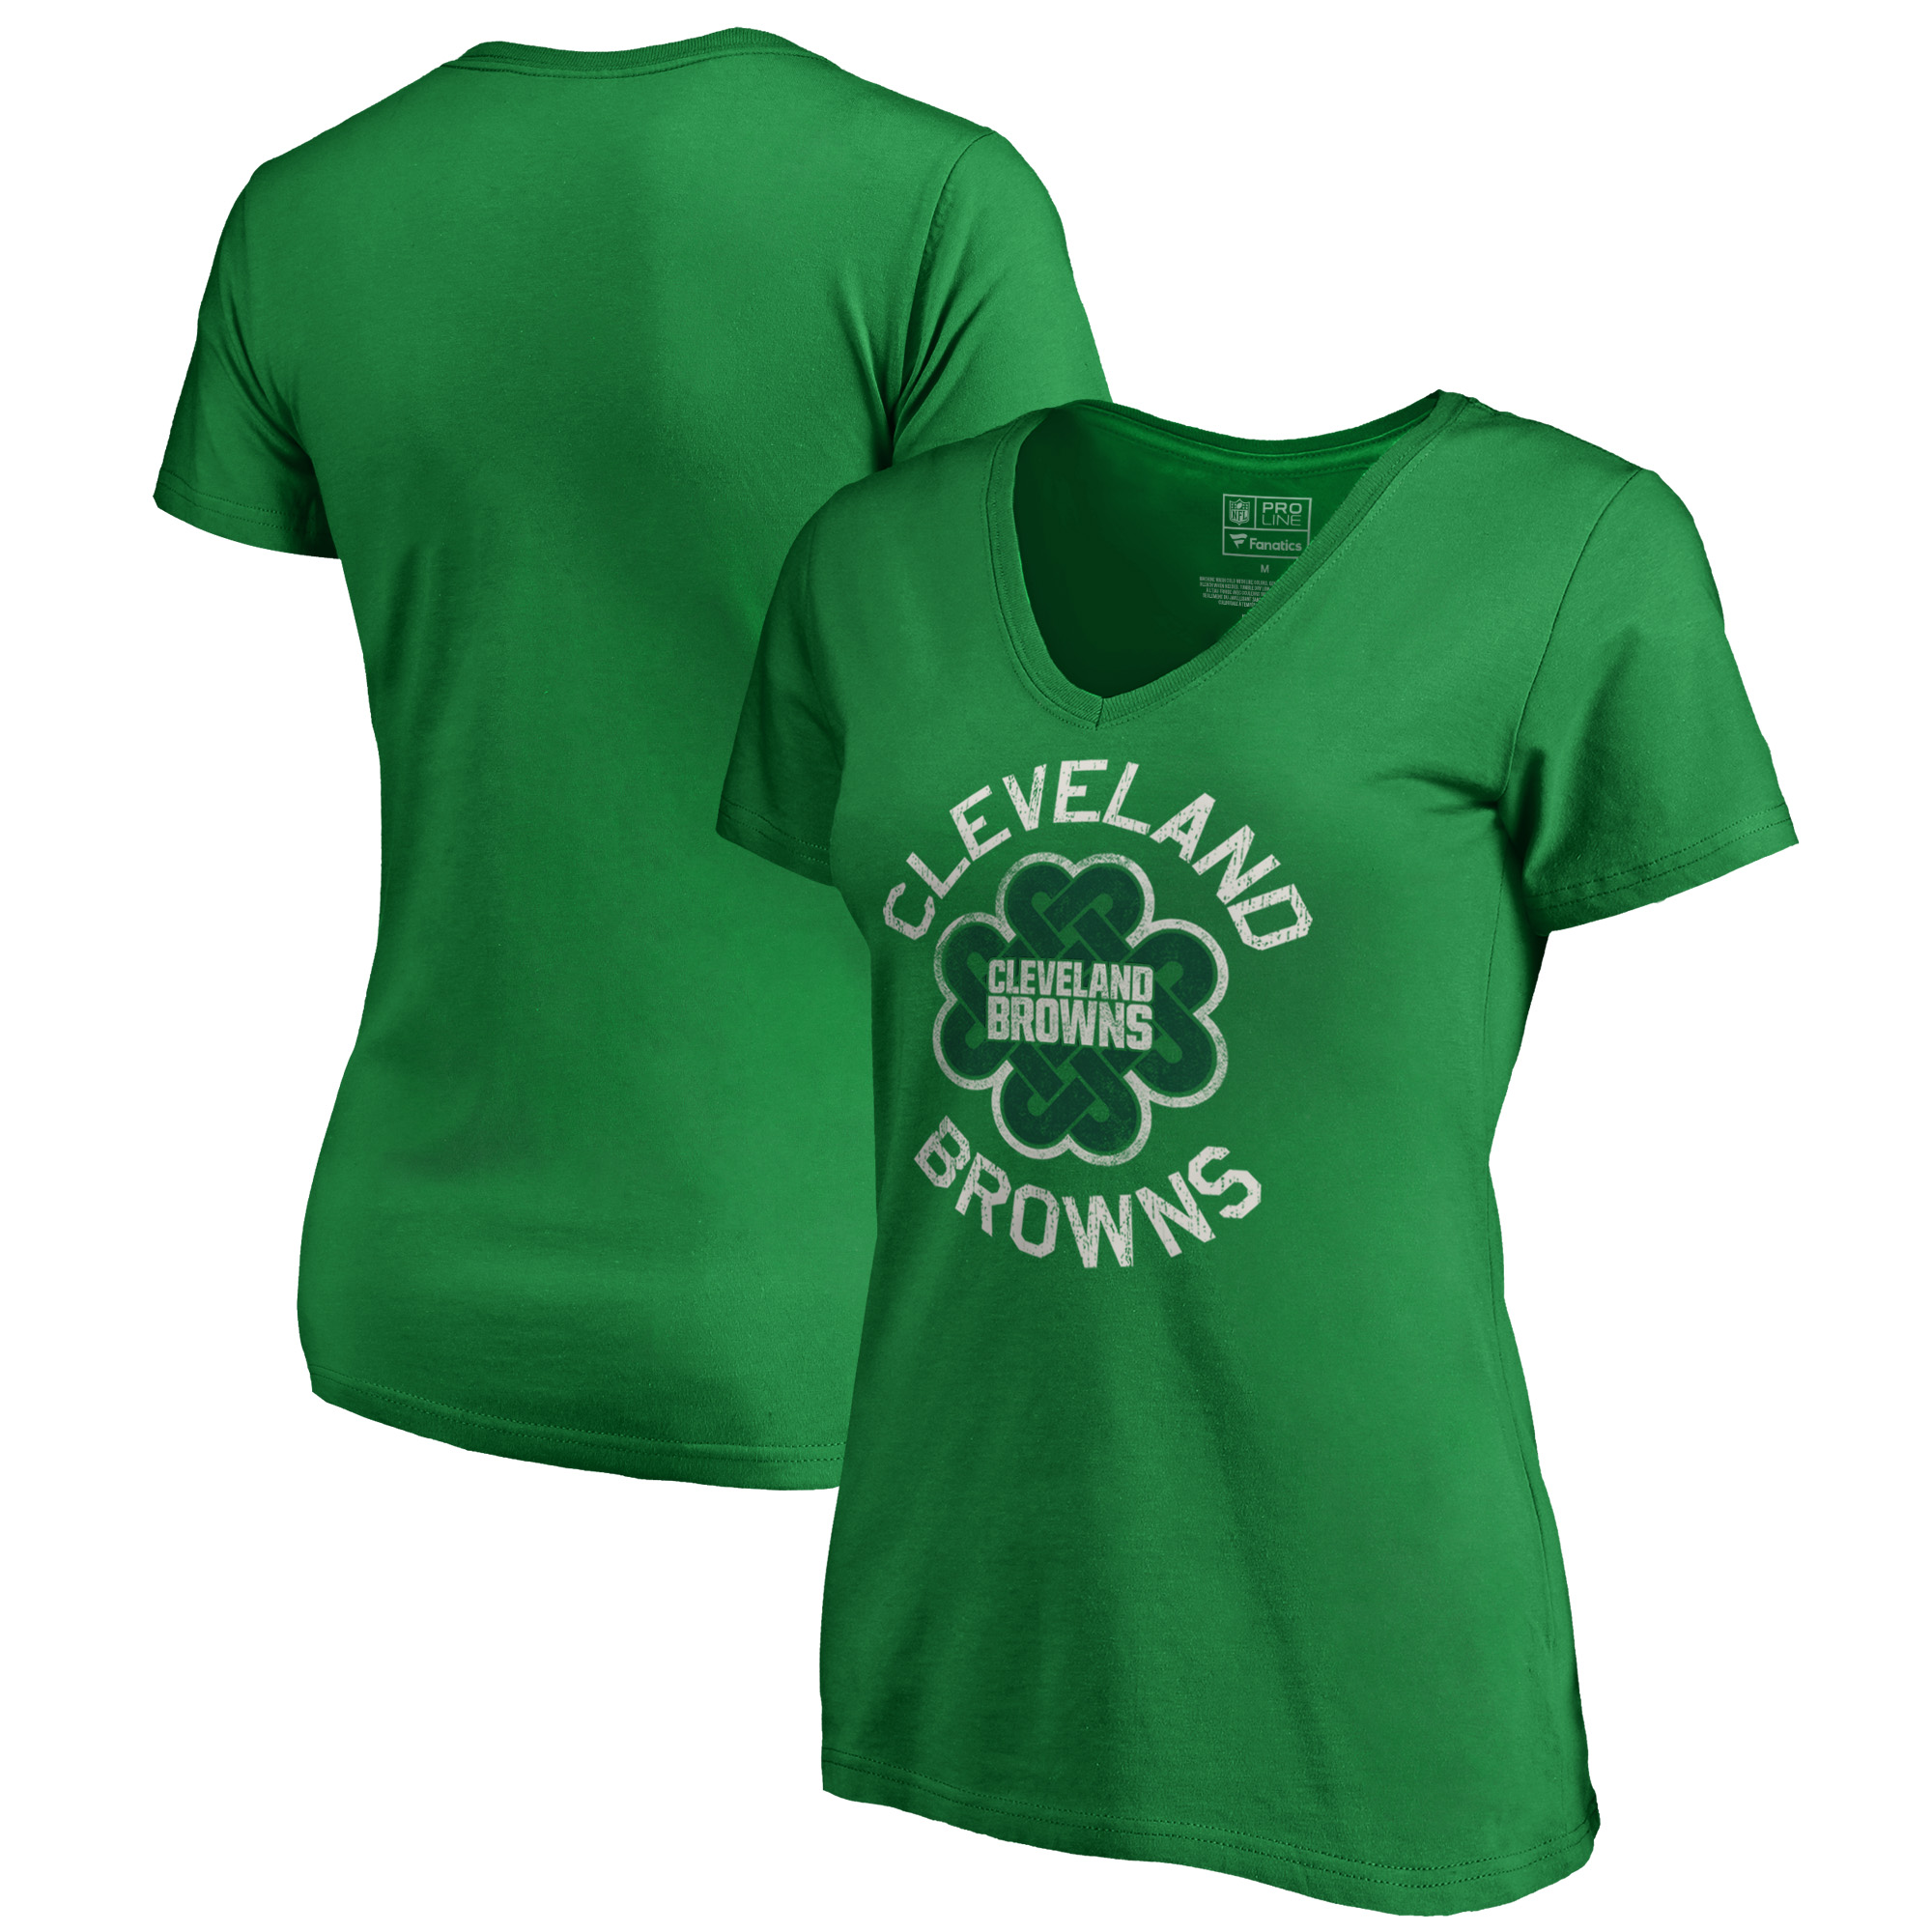 Cleveland Browns NFL Pro Line by Fanatics Branded Women's Plus Size St. Patrick's Day Luck Tradition V-Neck T-Shirt - Kelly Green